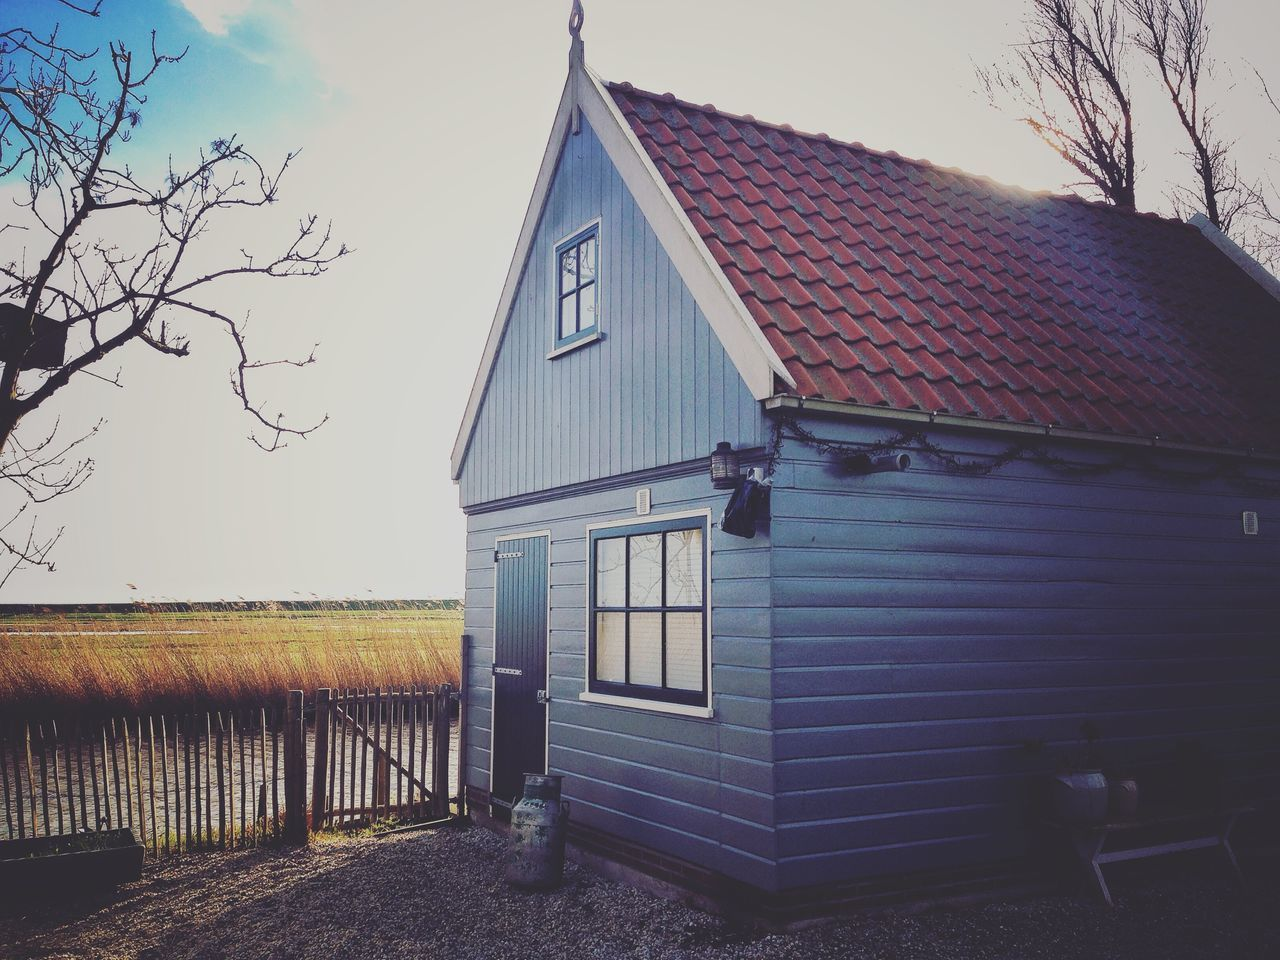 Amsterdam Country Cottage Amsterdam House Netherlands Holland Blue Cute Sun Goodweather Original Experiences Hidden Gems  Colour Of Life The Great Outdoors - 2017 EyeEm Awards